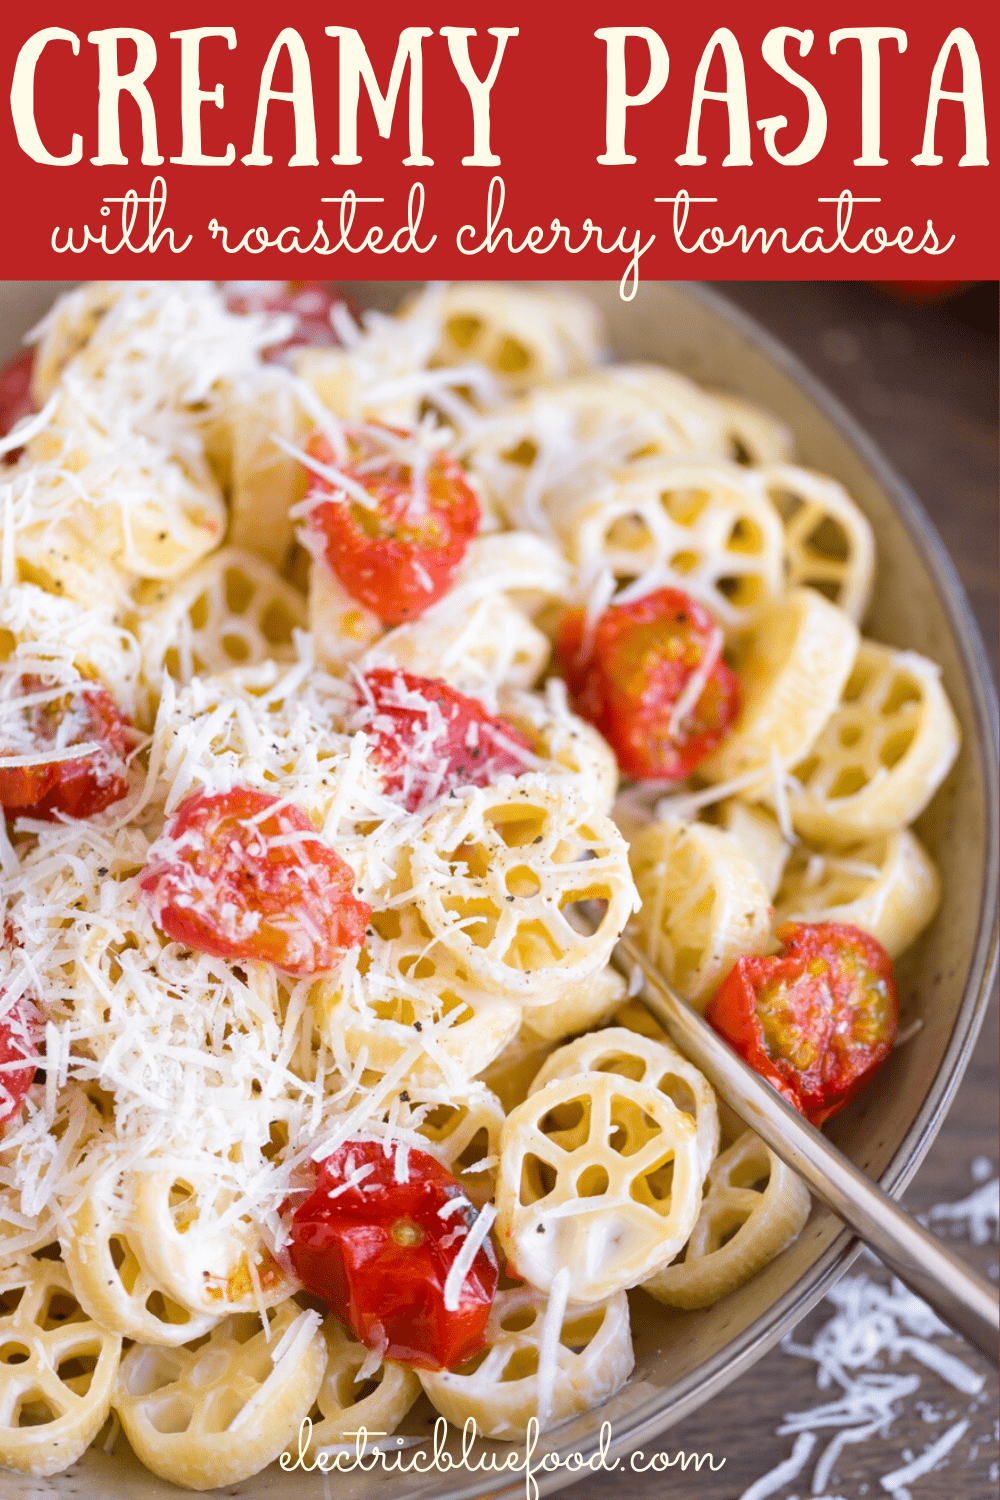 A creamy pasta dish with oven-roasted cherry tomatoes and a sprinkle of freshly grated pecorino.